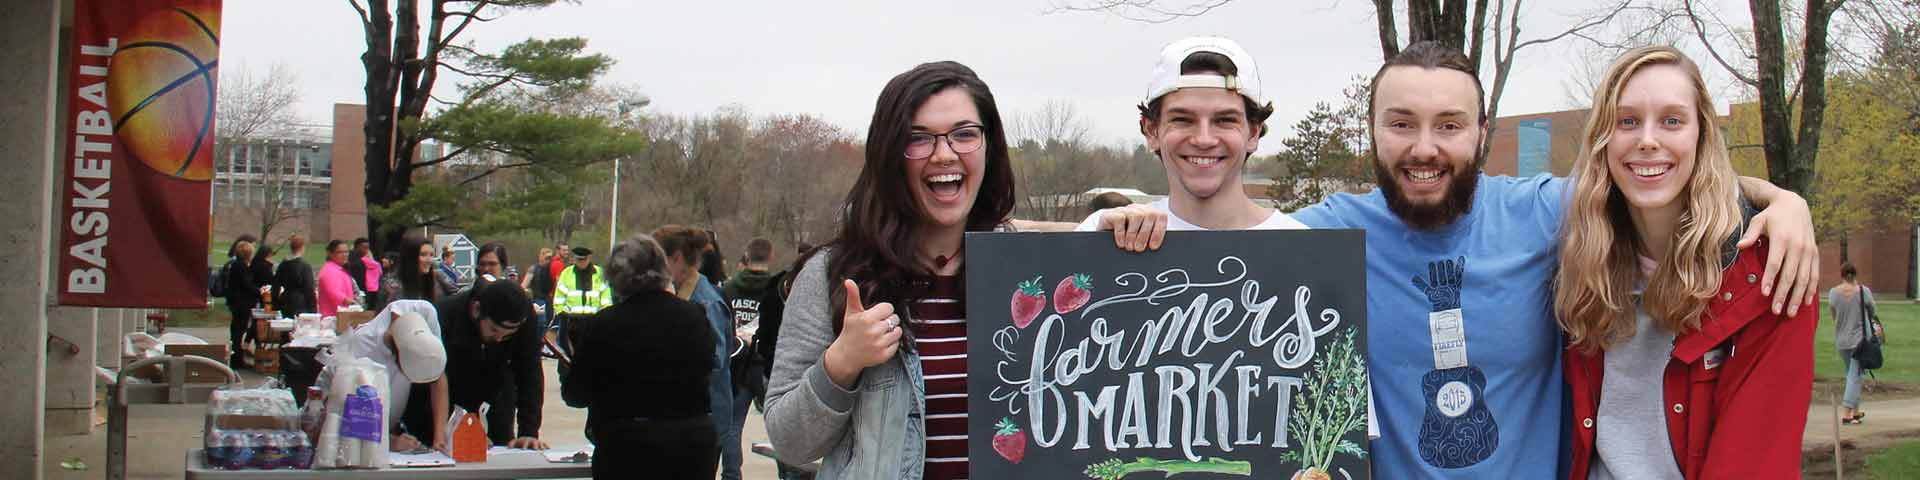 Four NECC students outside at a Farmer's Market, happy, and standing arm-in-arm holding up a sign for the market.